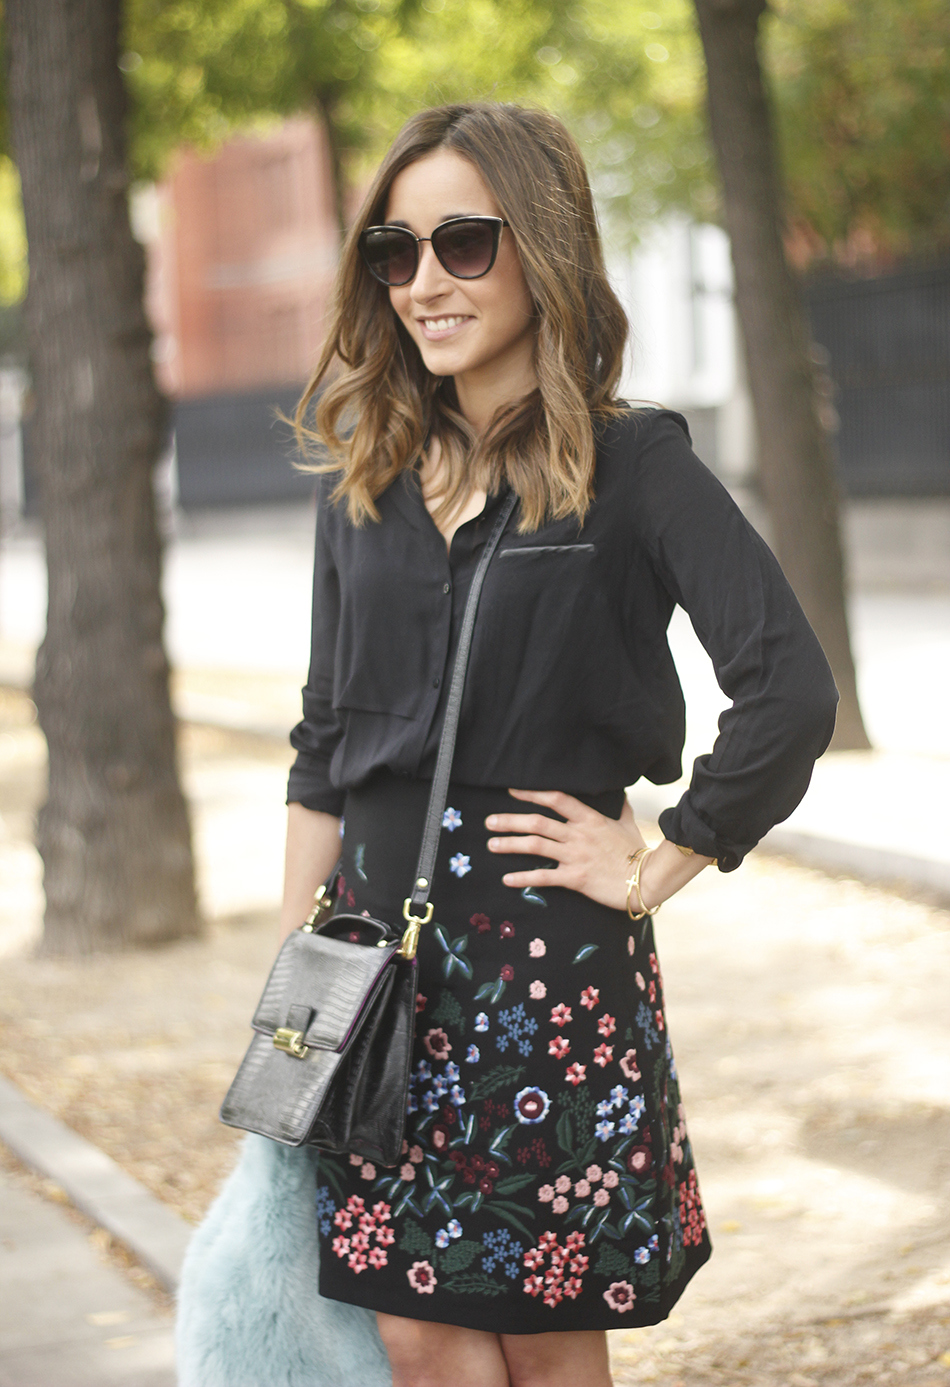 black skirt with flowers outfit08